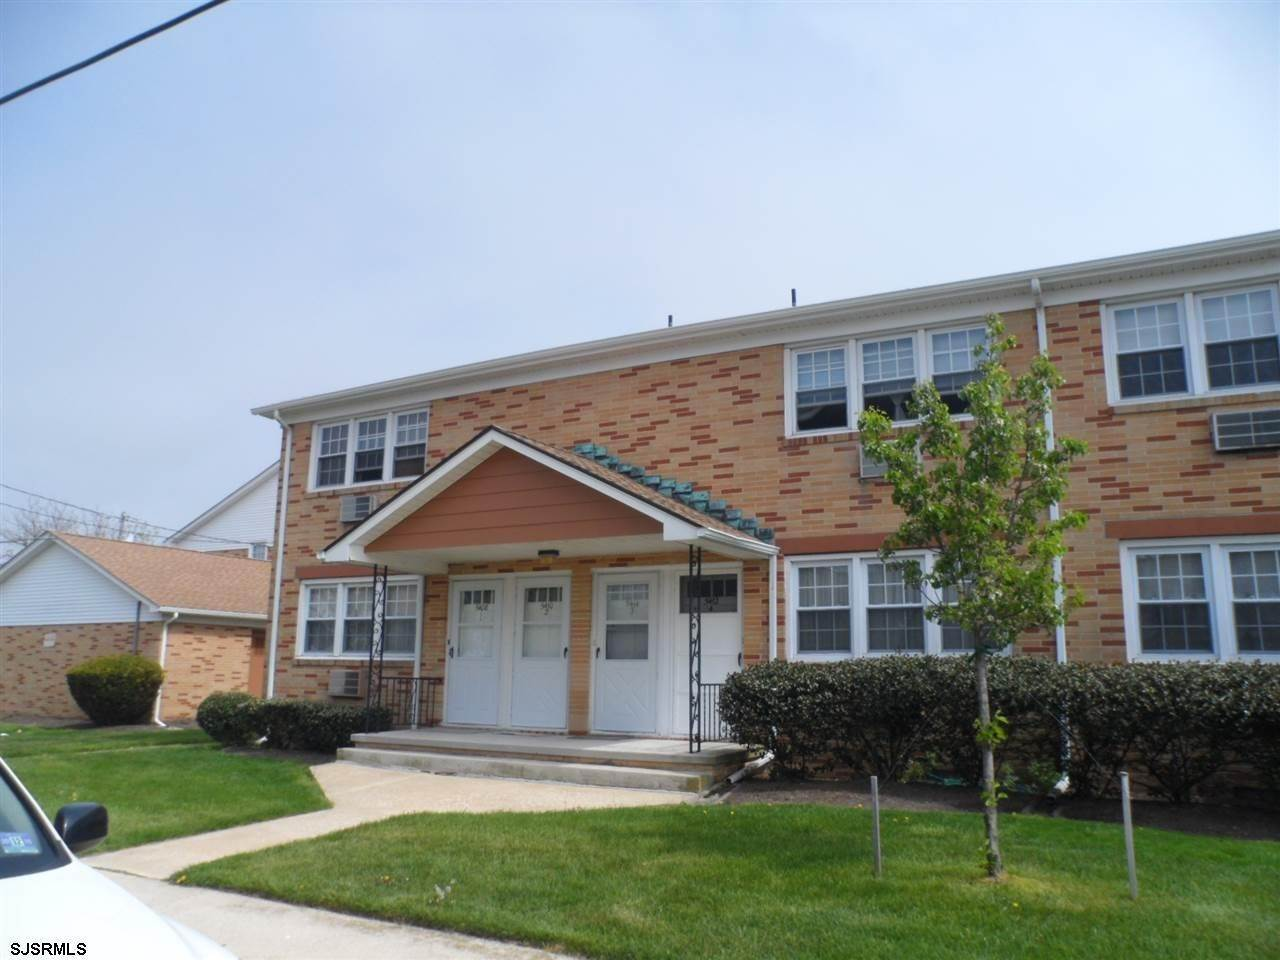 Condominiums at 5412 Marshall Ave Ventnor City Ventnor, New Jersey 08406 United States